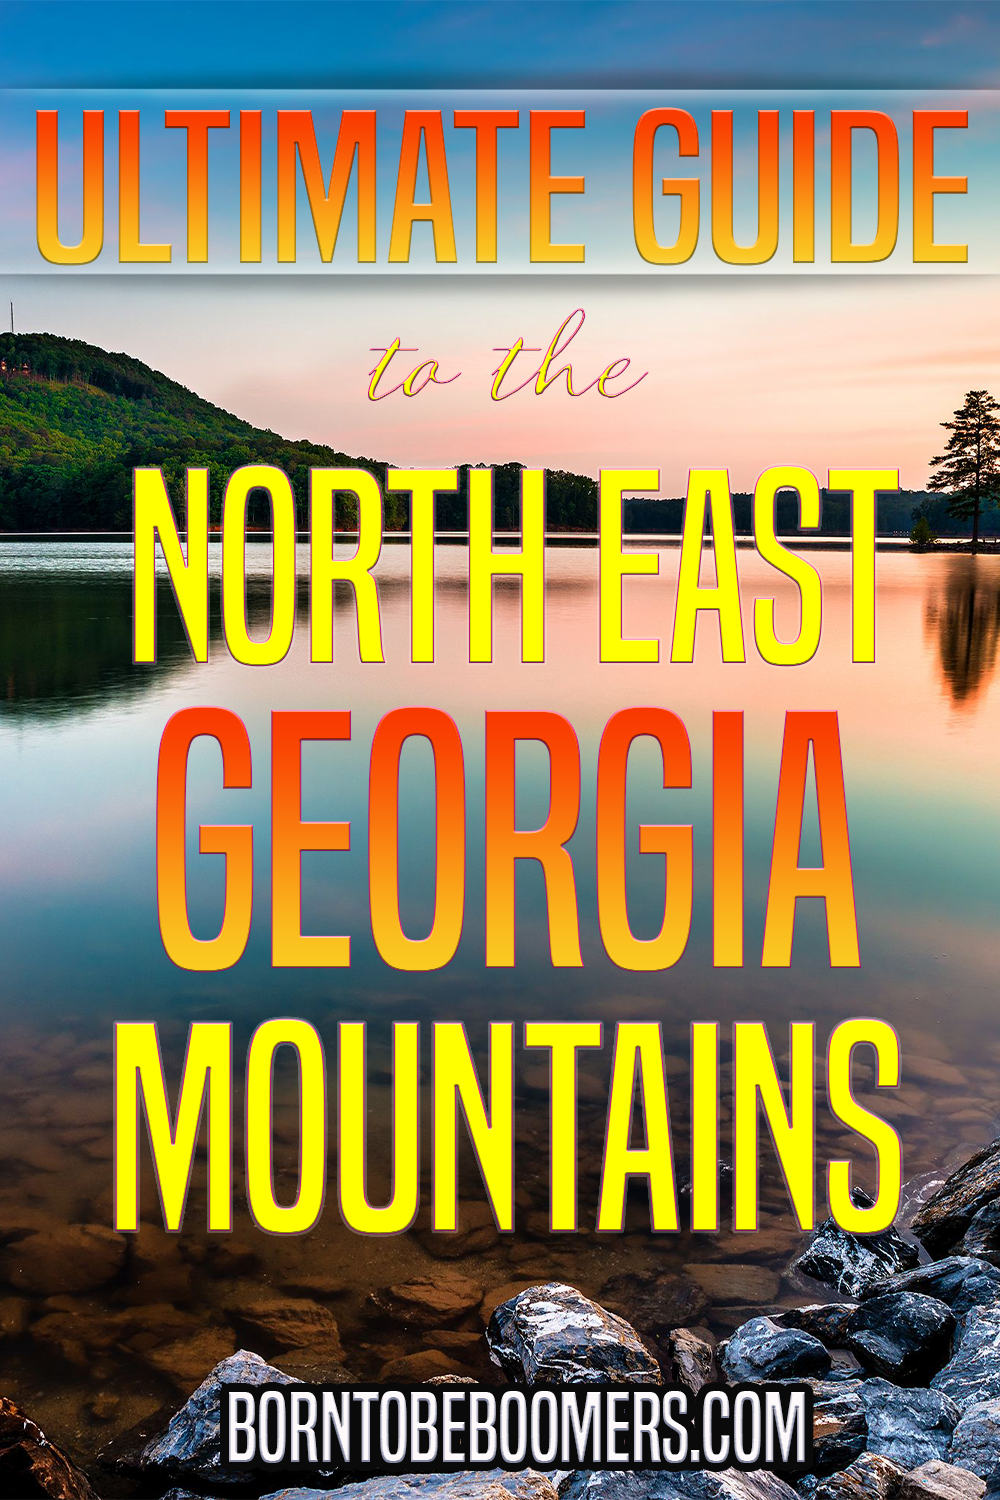 Every year we always head to the mountains in Northeast Georgia. The reason why? Cooler weather in the summertime, pet-friendly accommodations and friendly people make Northeast Georgia Mountains an easy choice!   Born to Be Boomers @borntobeboomers #georgiavacation #georgiamountains #babyboomertravel #summervacation #summergetaway #georgiastaycation #mountaingetaway #roadtrip #babyboomervacation #borntobeboomers